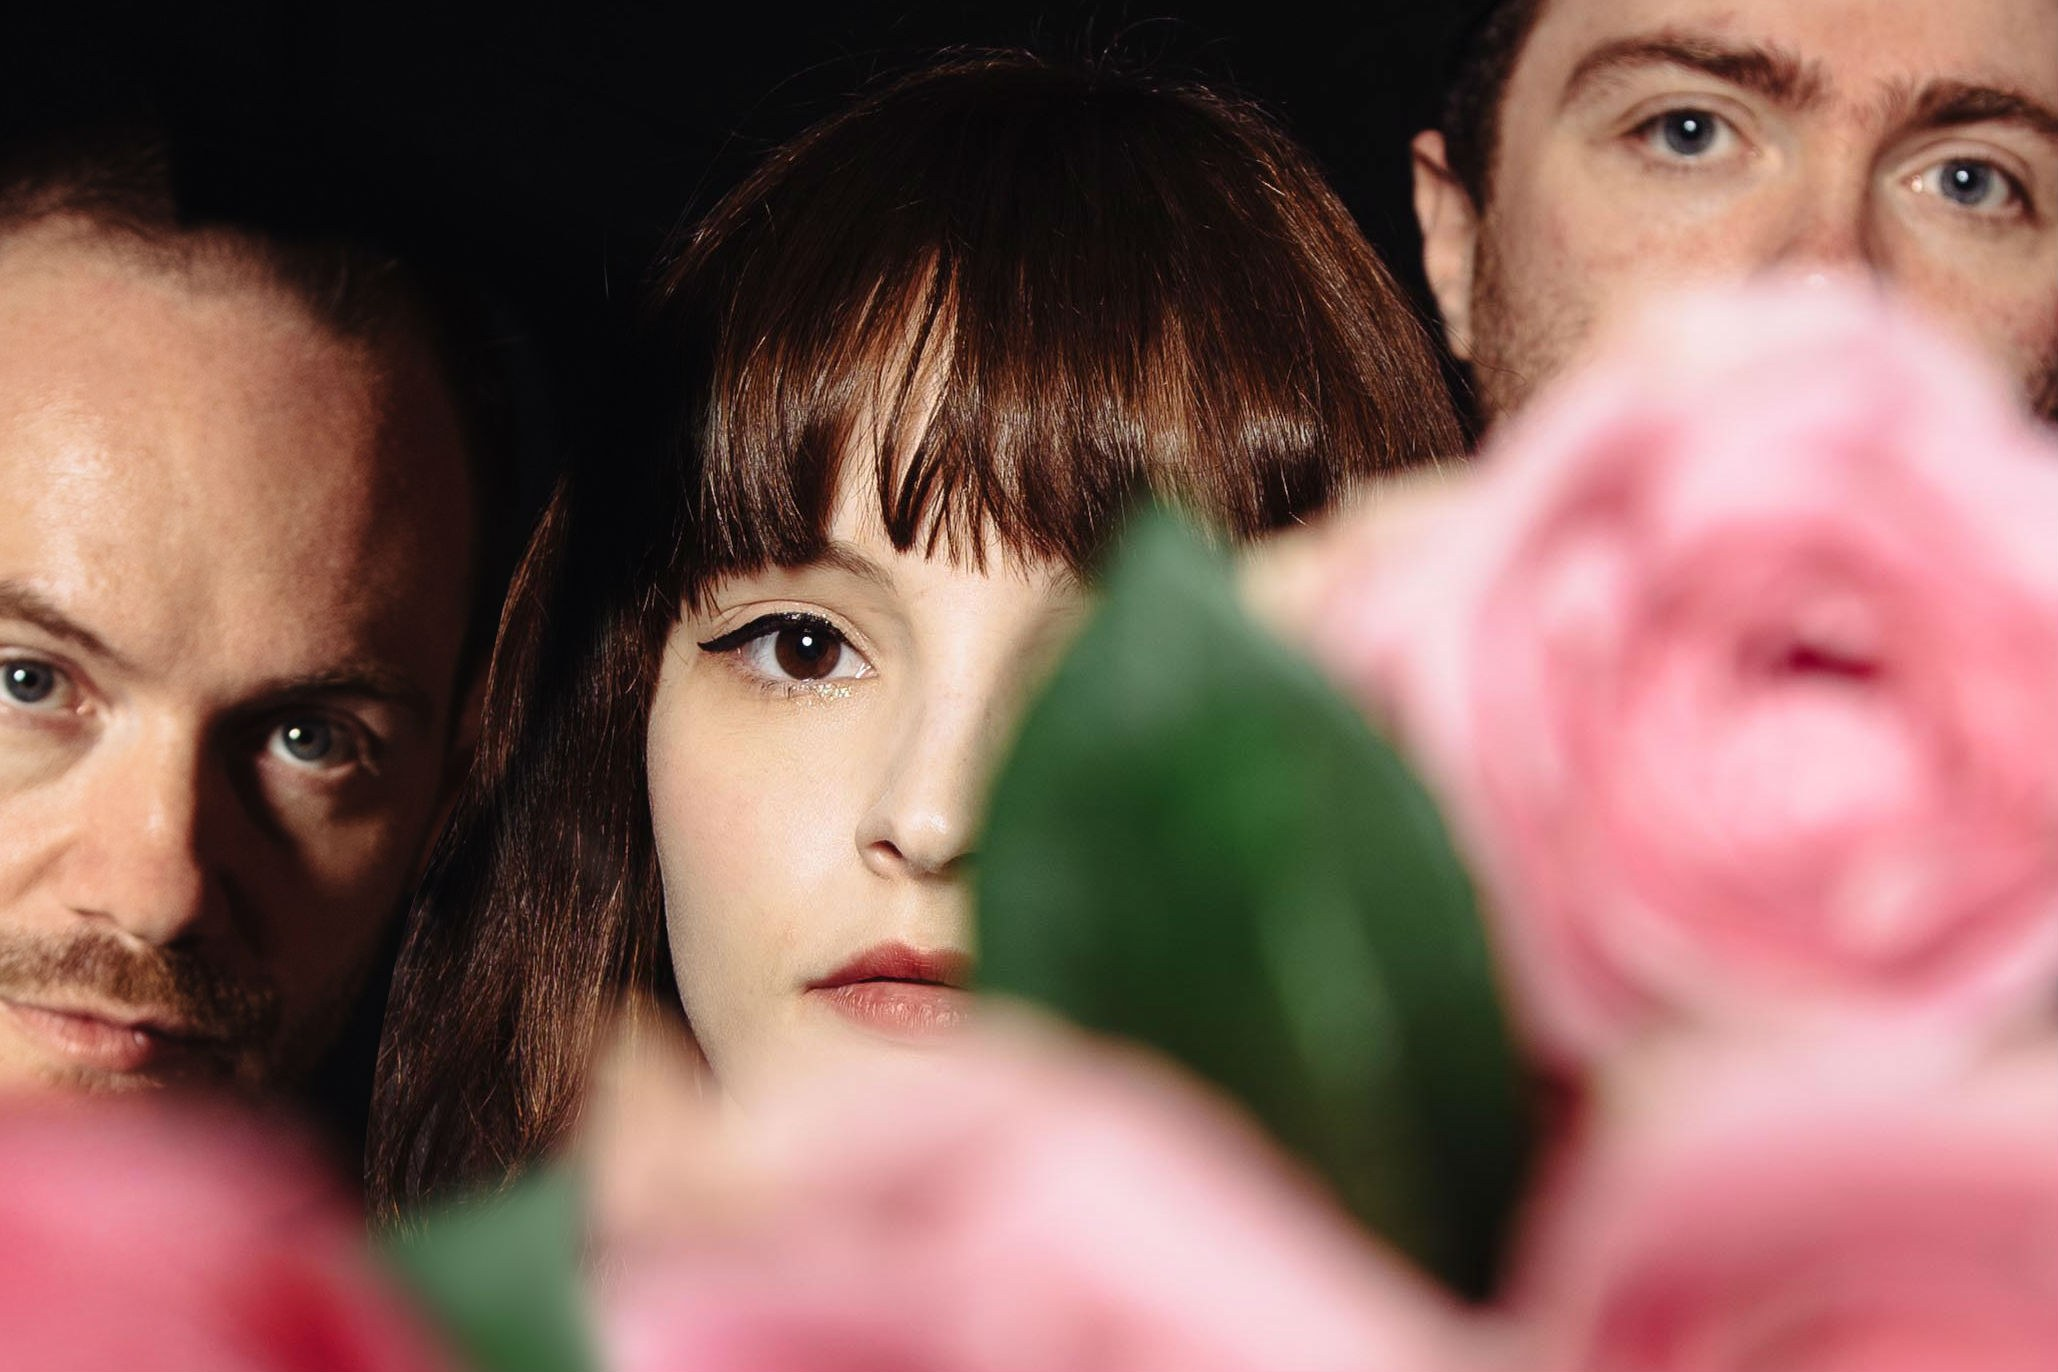 Chvrches: The eye of the storm